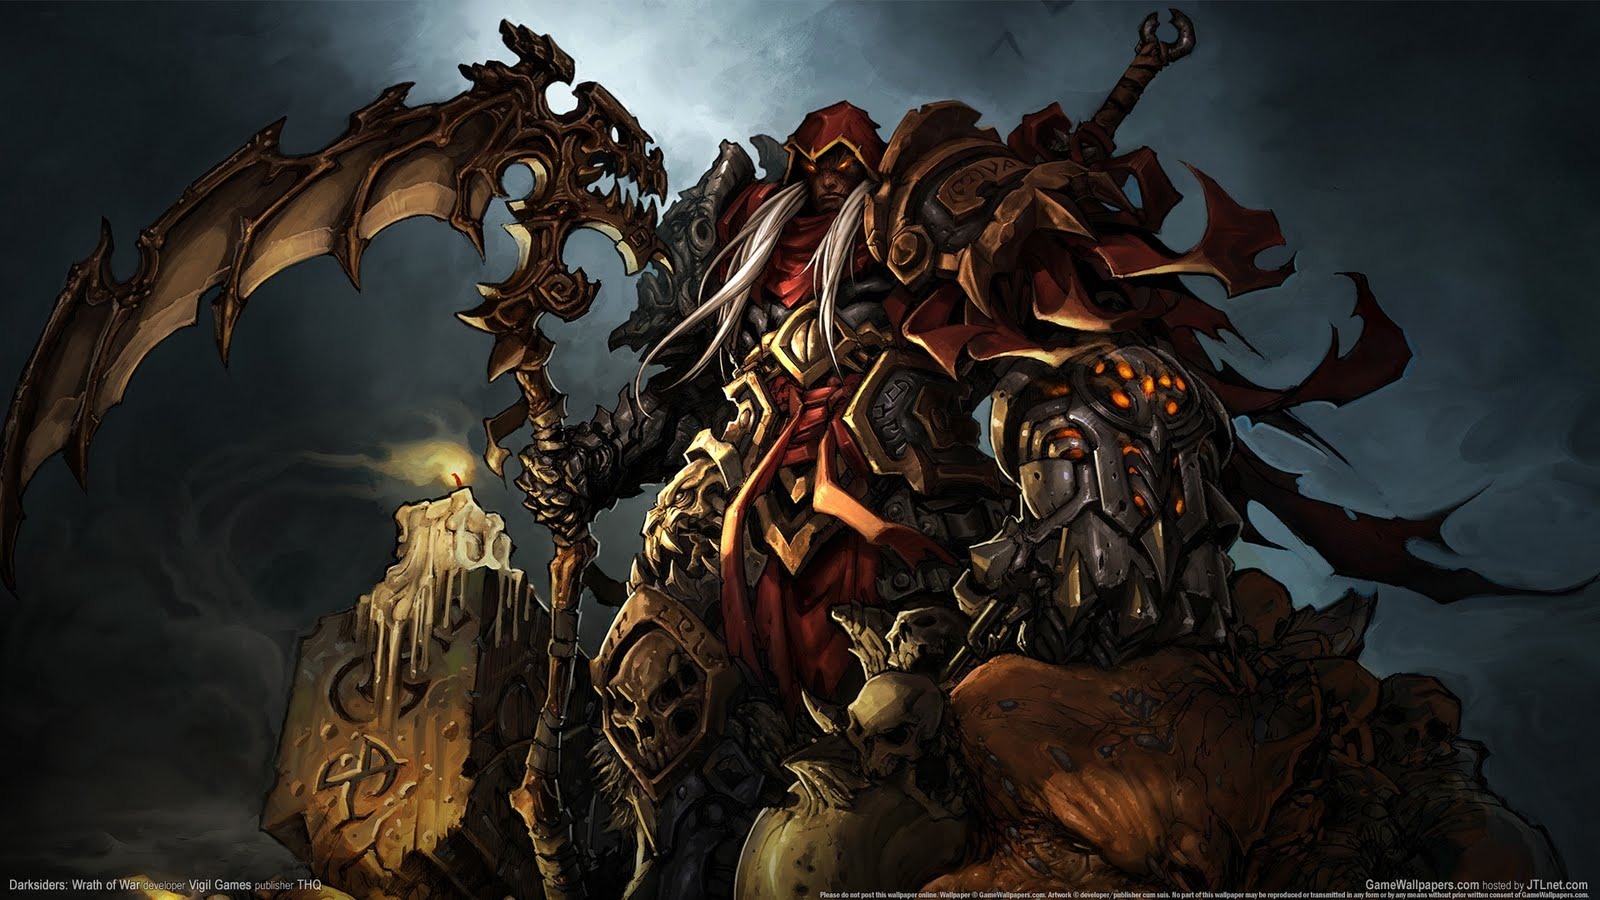 http://1.bp.blogspot.com/_j6hb7P0UBkc/TN8tqWmiNZI/AAAAAAAAAEs/LxF1BIluz1Q/s1600/wallpaper_darksiders_wrath_of_war_02_1920x1080.jpg